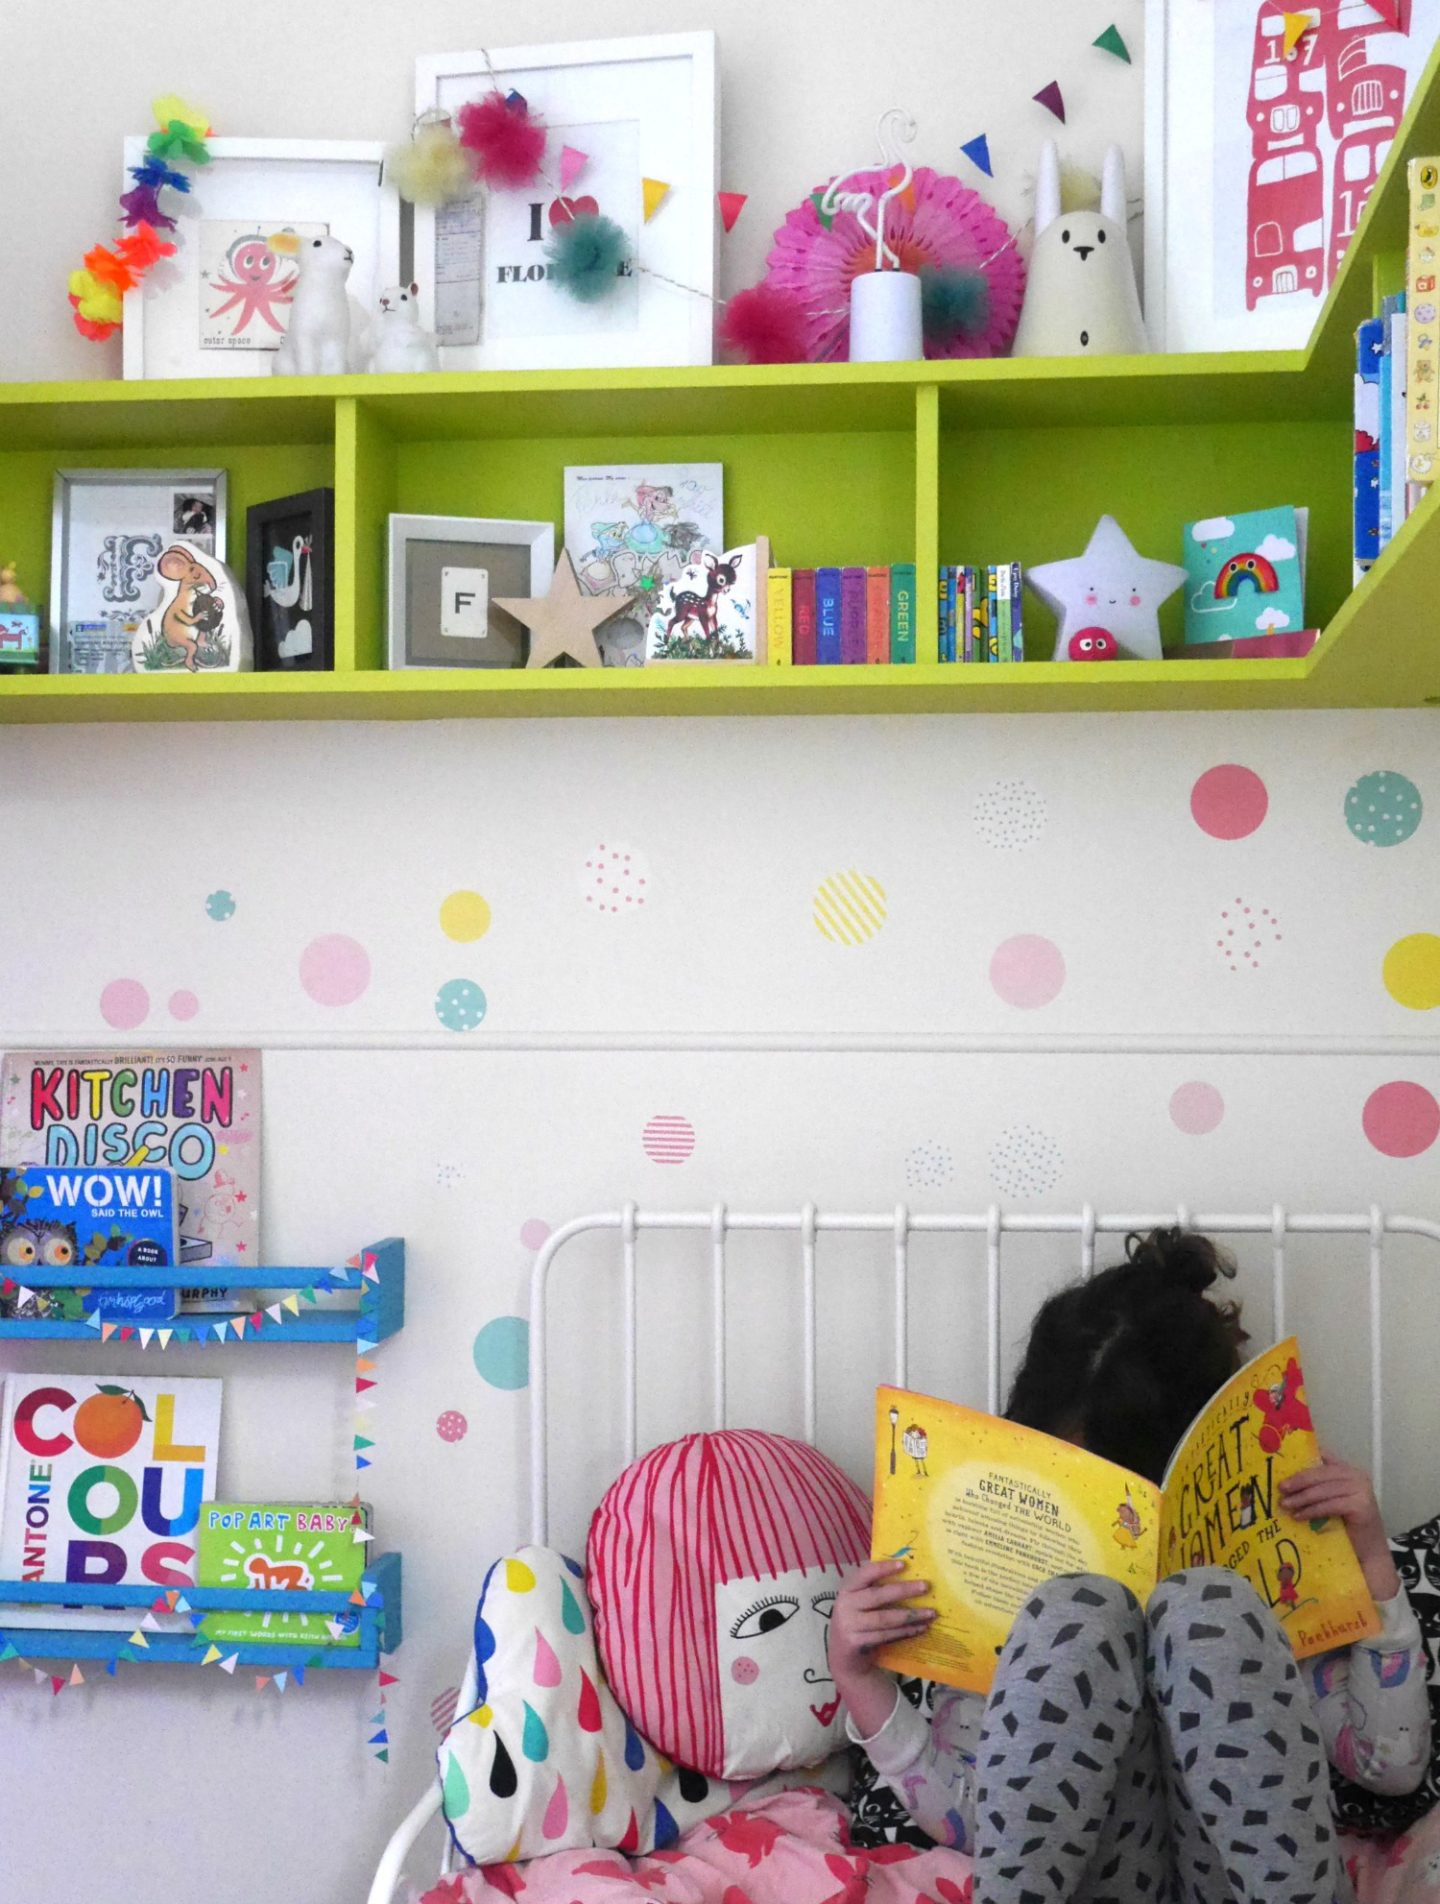 Colourful children's bedrooms with painted book shelves and wall stickers